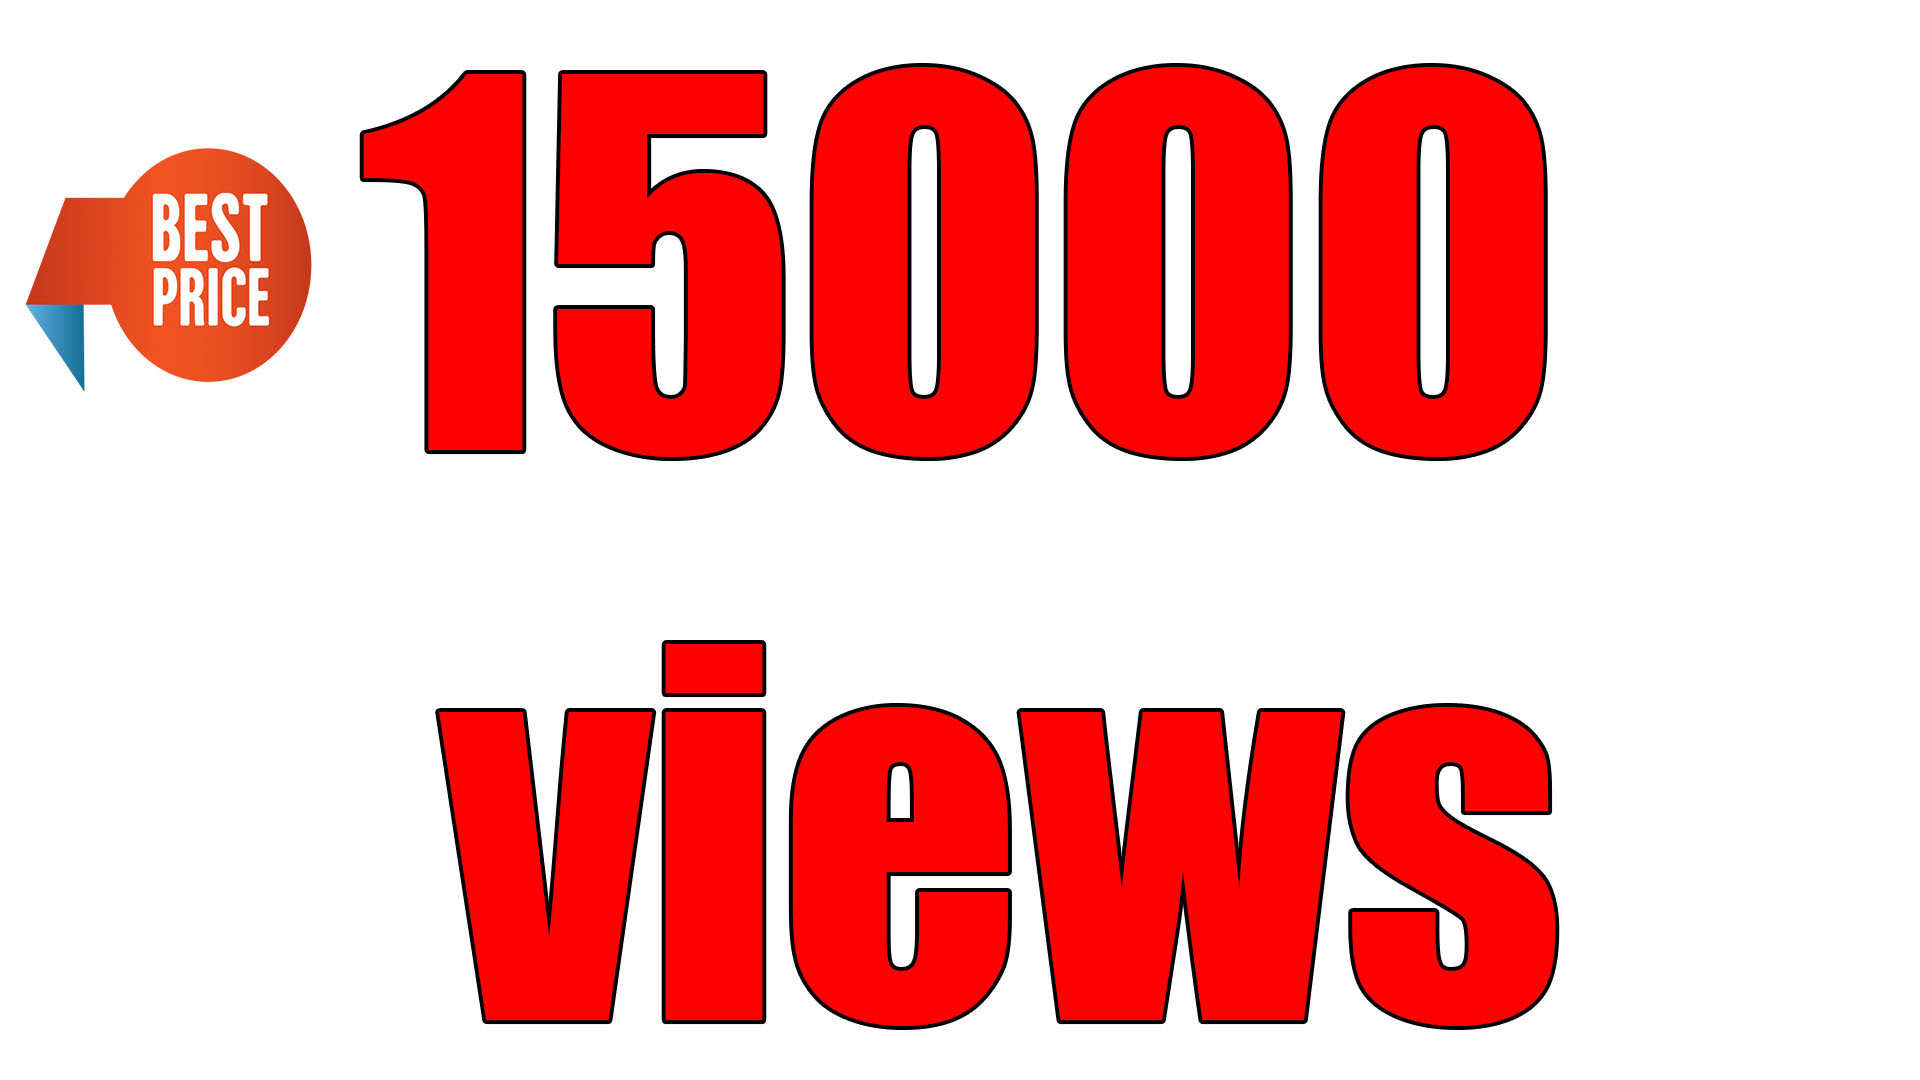 15000 youtube views for best price ever!